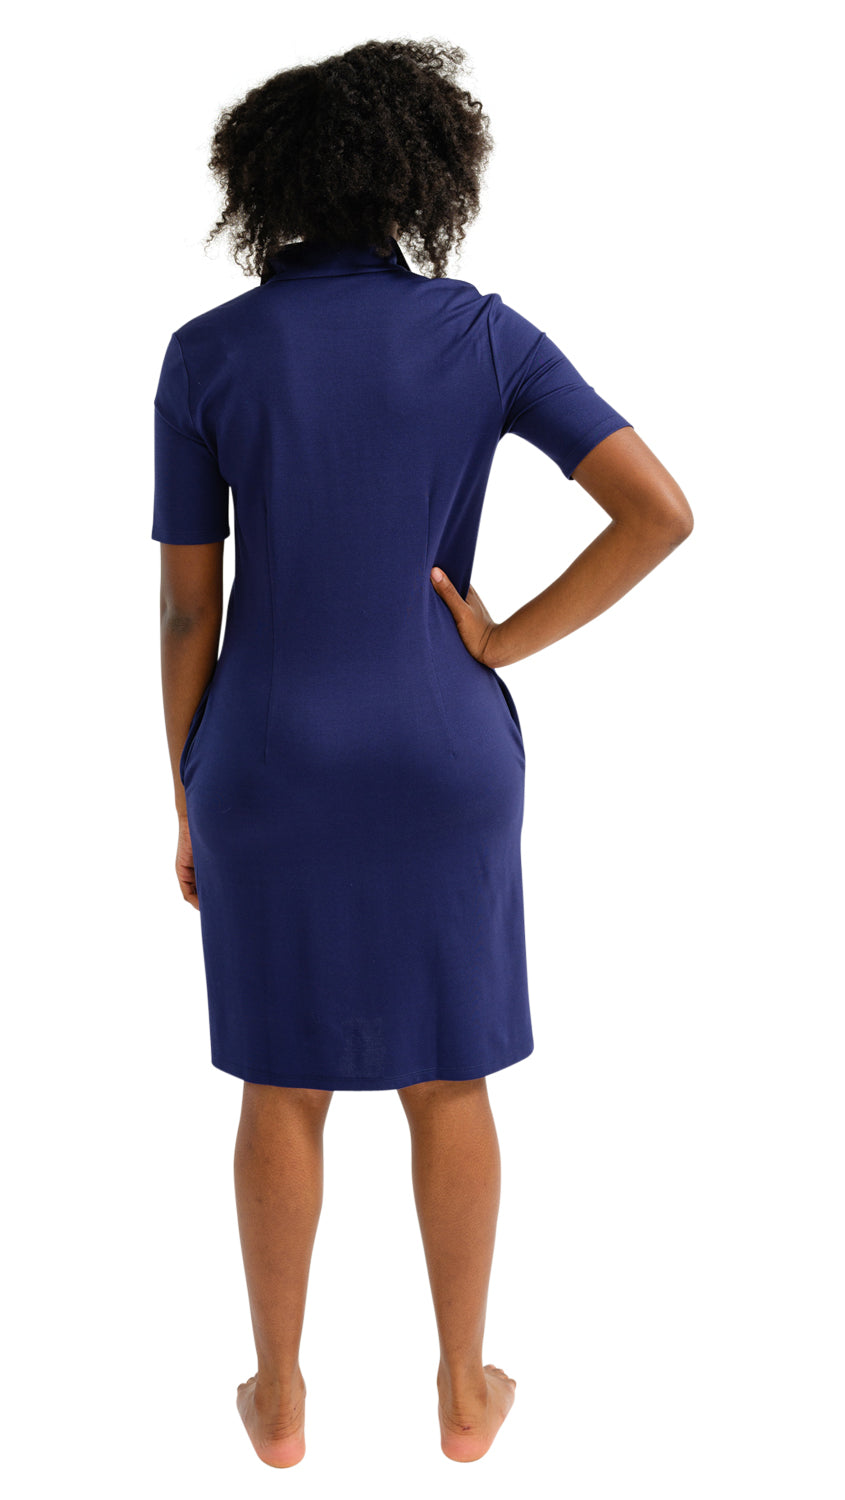 Britt Dress Short Sleeve - Solid Navy w/White Trim